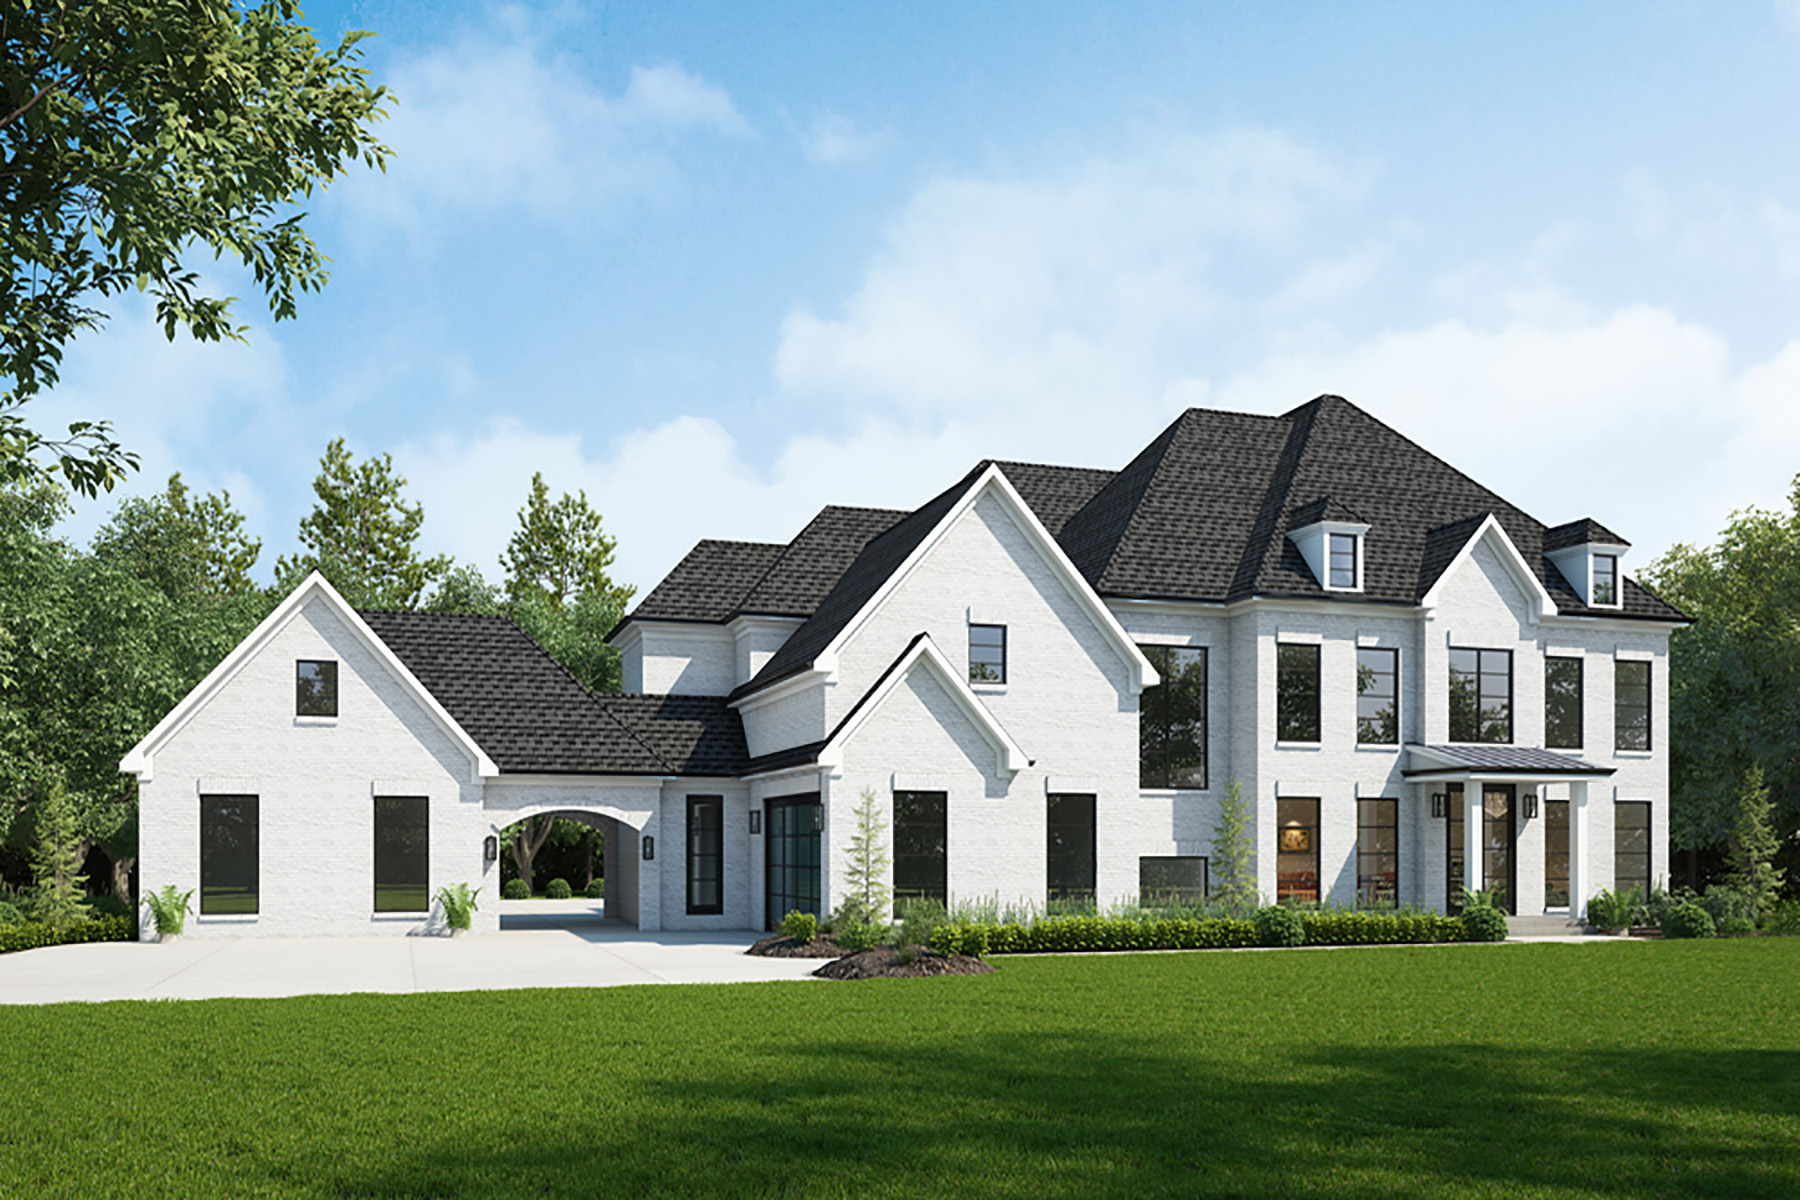 Single Family Homes for Active at Modern Estate To Be Built In Alpharetta's Downtown Garden District 12480 Hopewell Road Alpharetta, Georgia 30009 United States